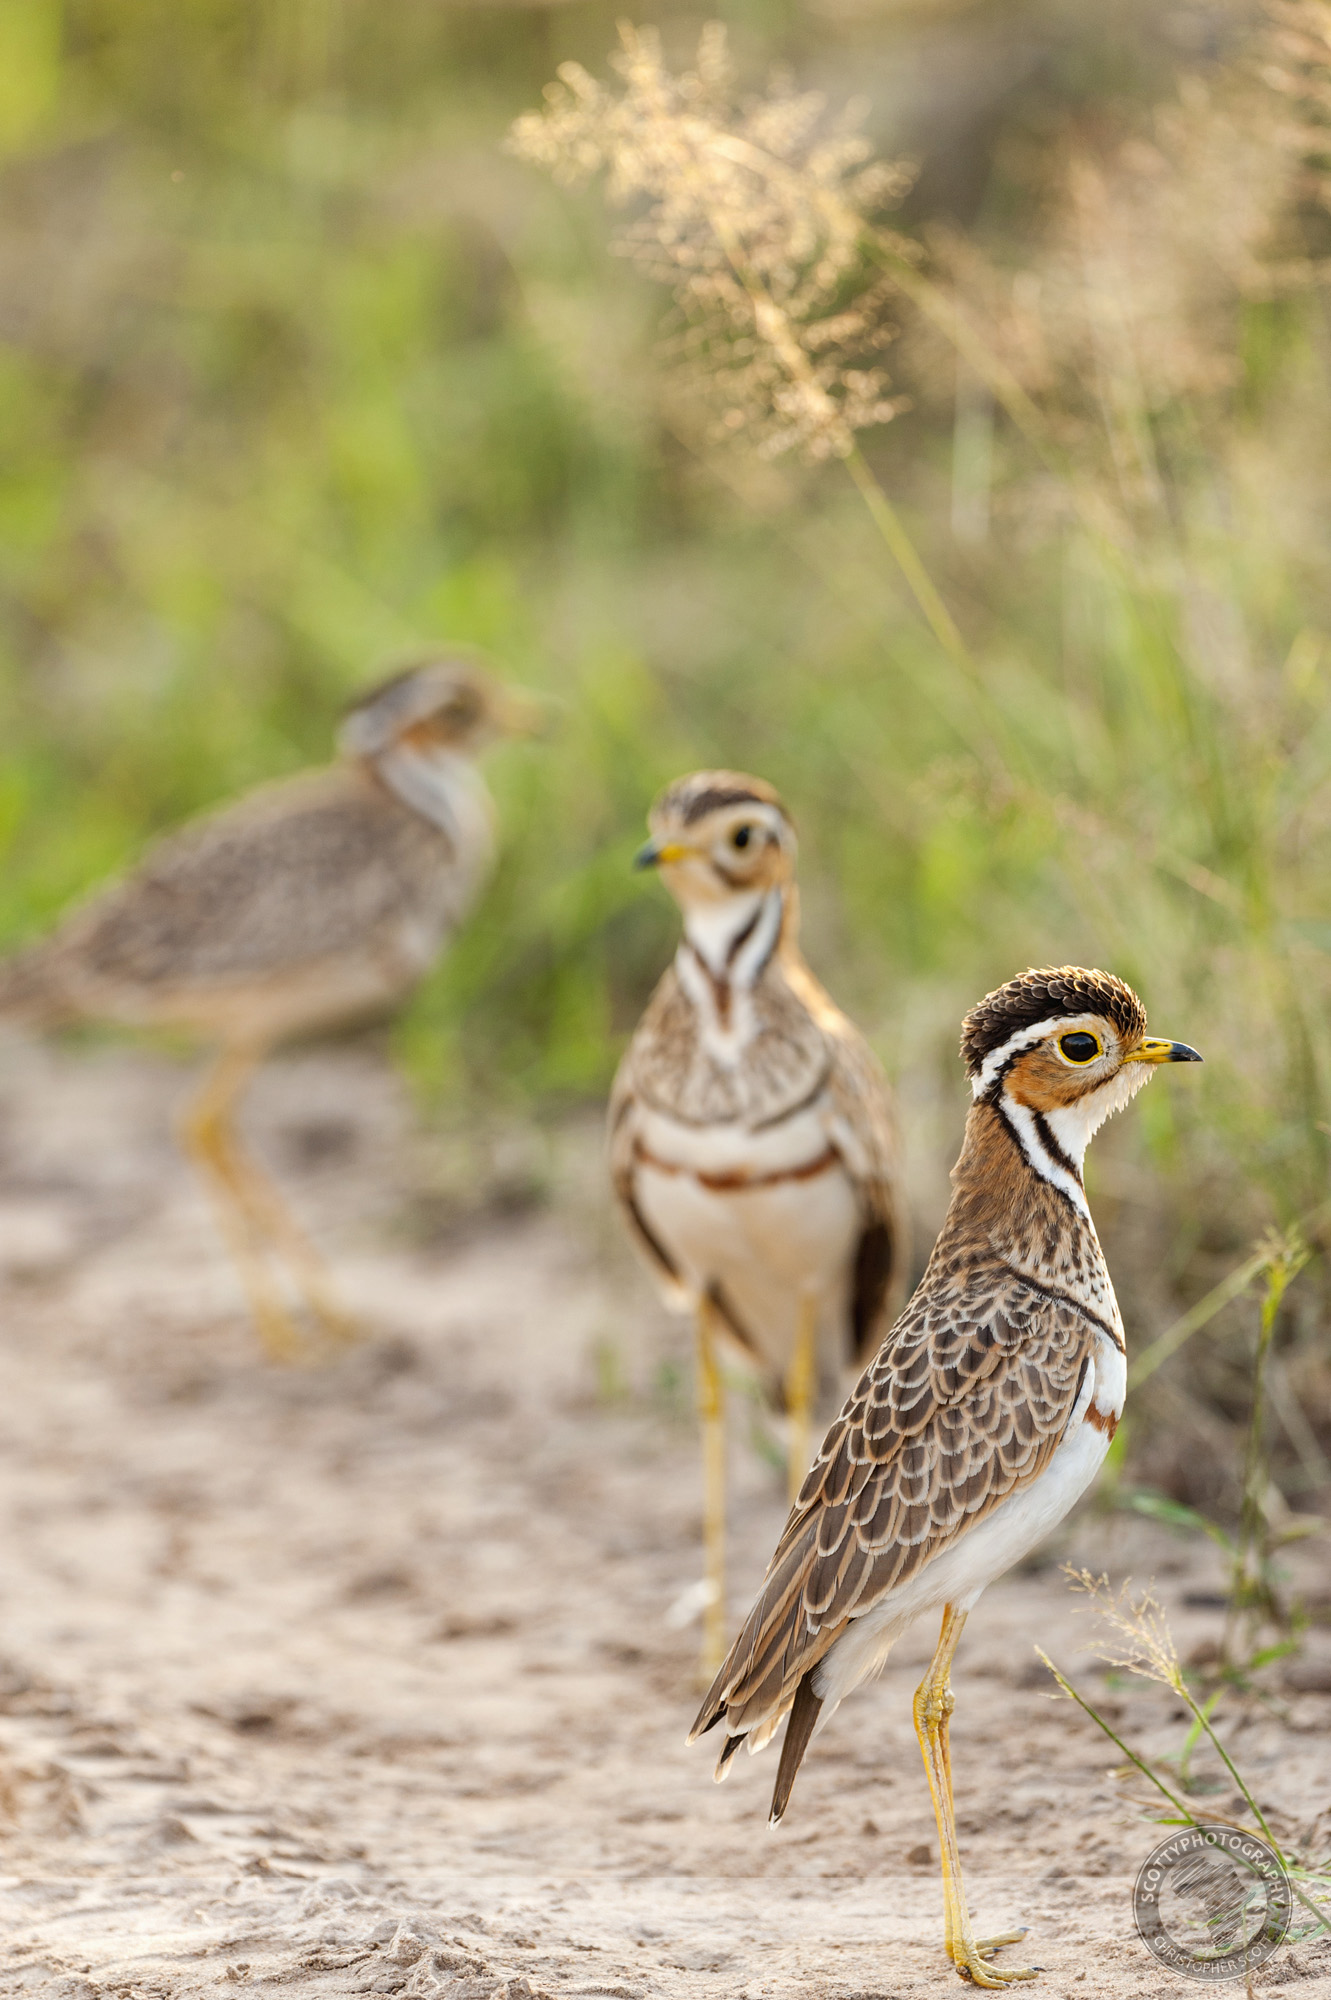 Courser, Thre Banded-55 copy.jpg